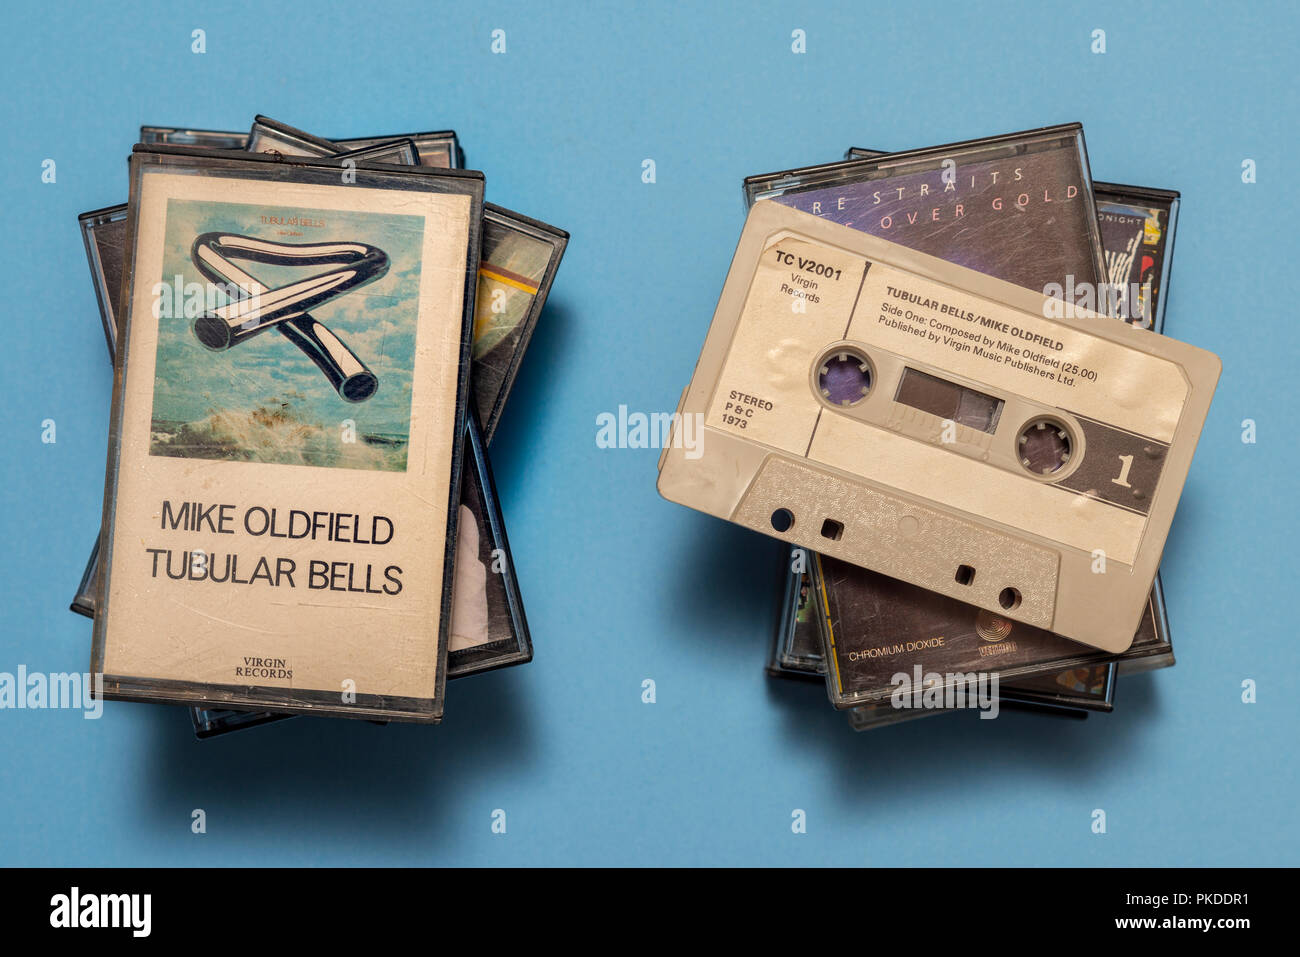 compact audio cassette of Mike Oldfield, Tubular Bells album with art work. - Stock Image